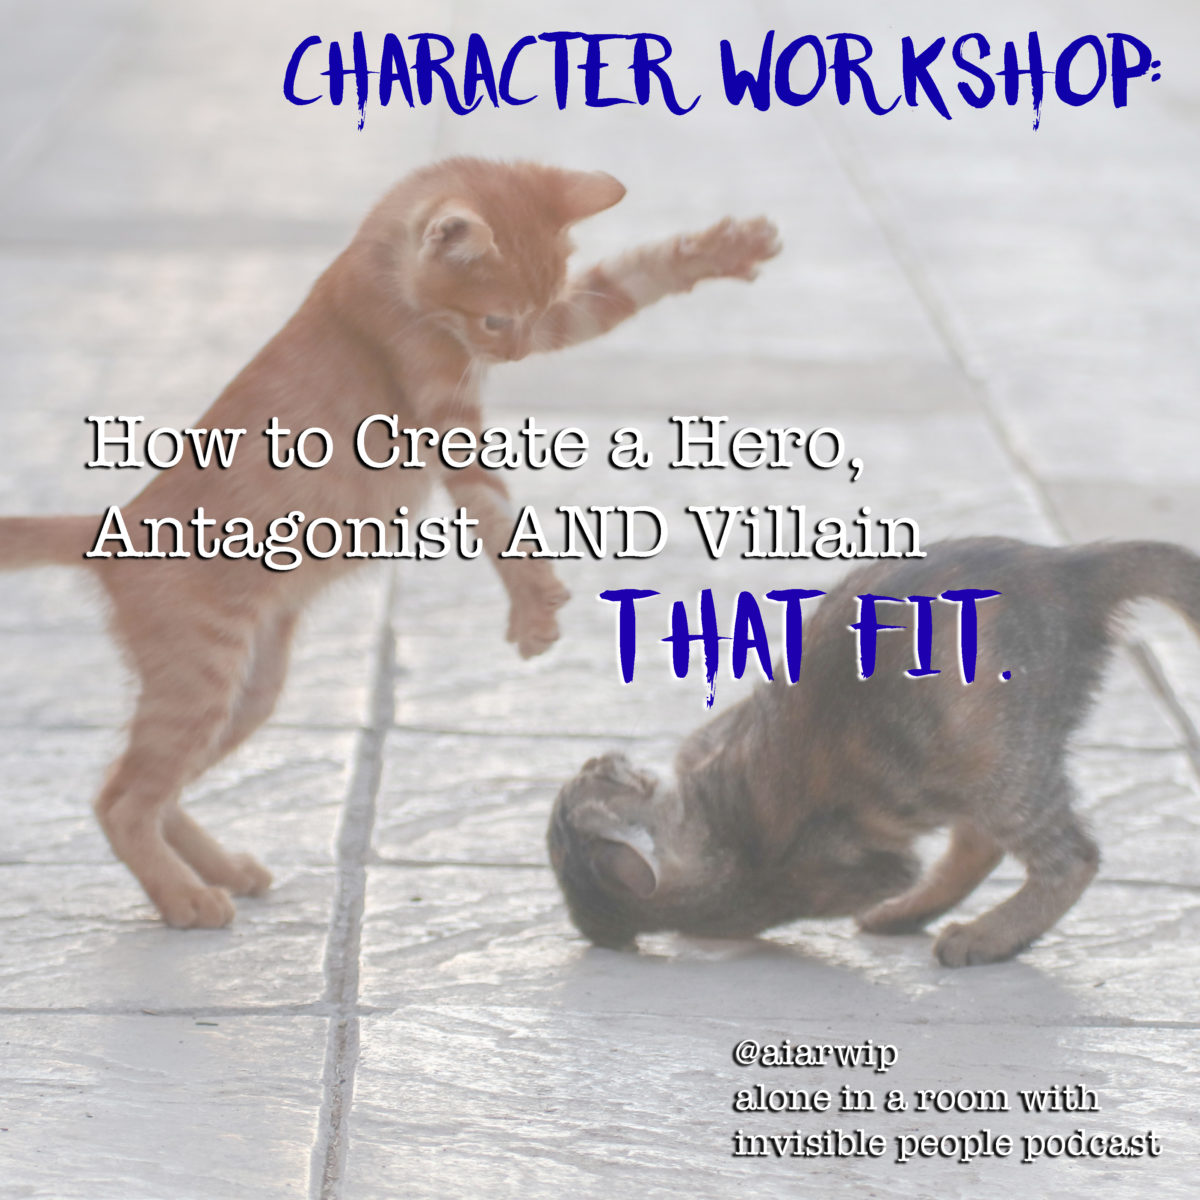 Episode 114: How to Create a Hero, Antagonist AND Villain that FIT – WORKSHOP